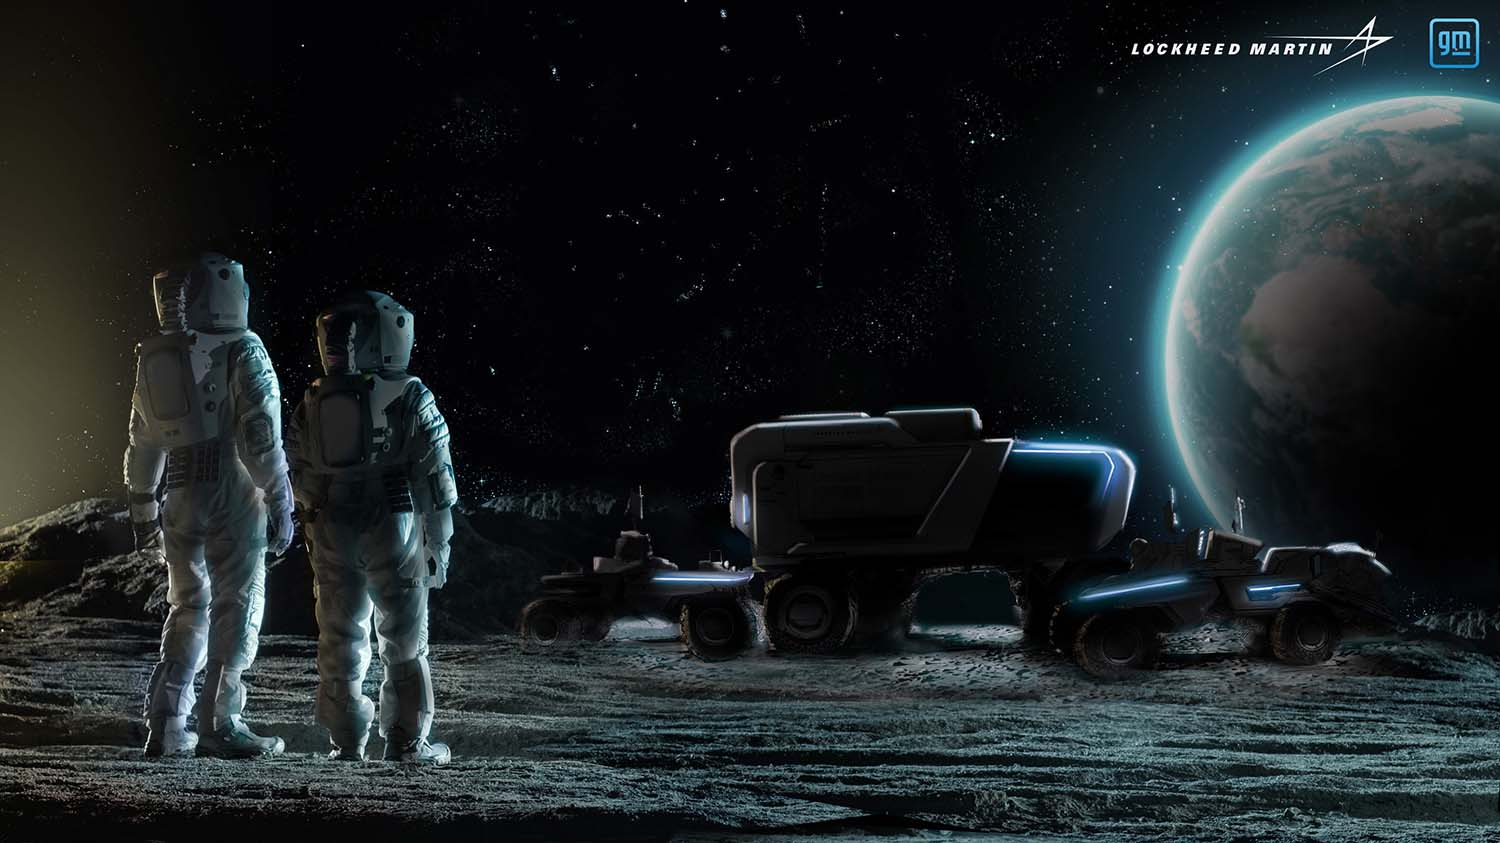 Lockheed Martin And General Motors Team-Up To Develop Next-Generation Lunar Rover for NASA